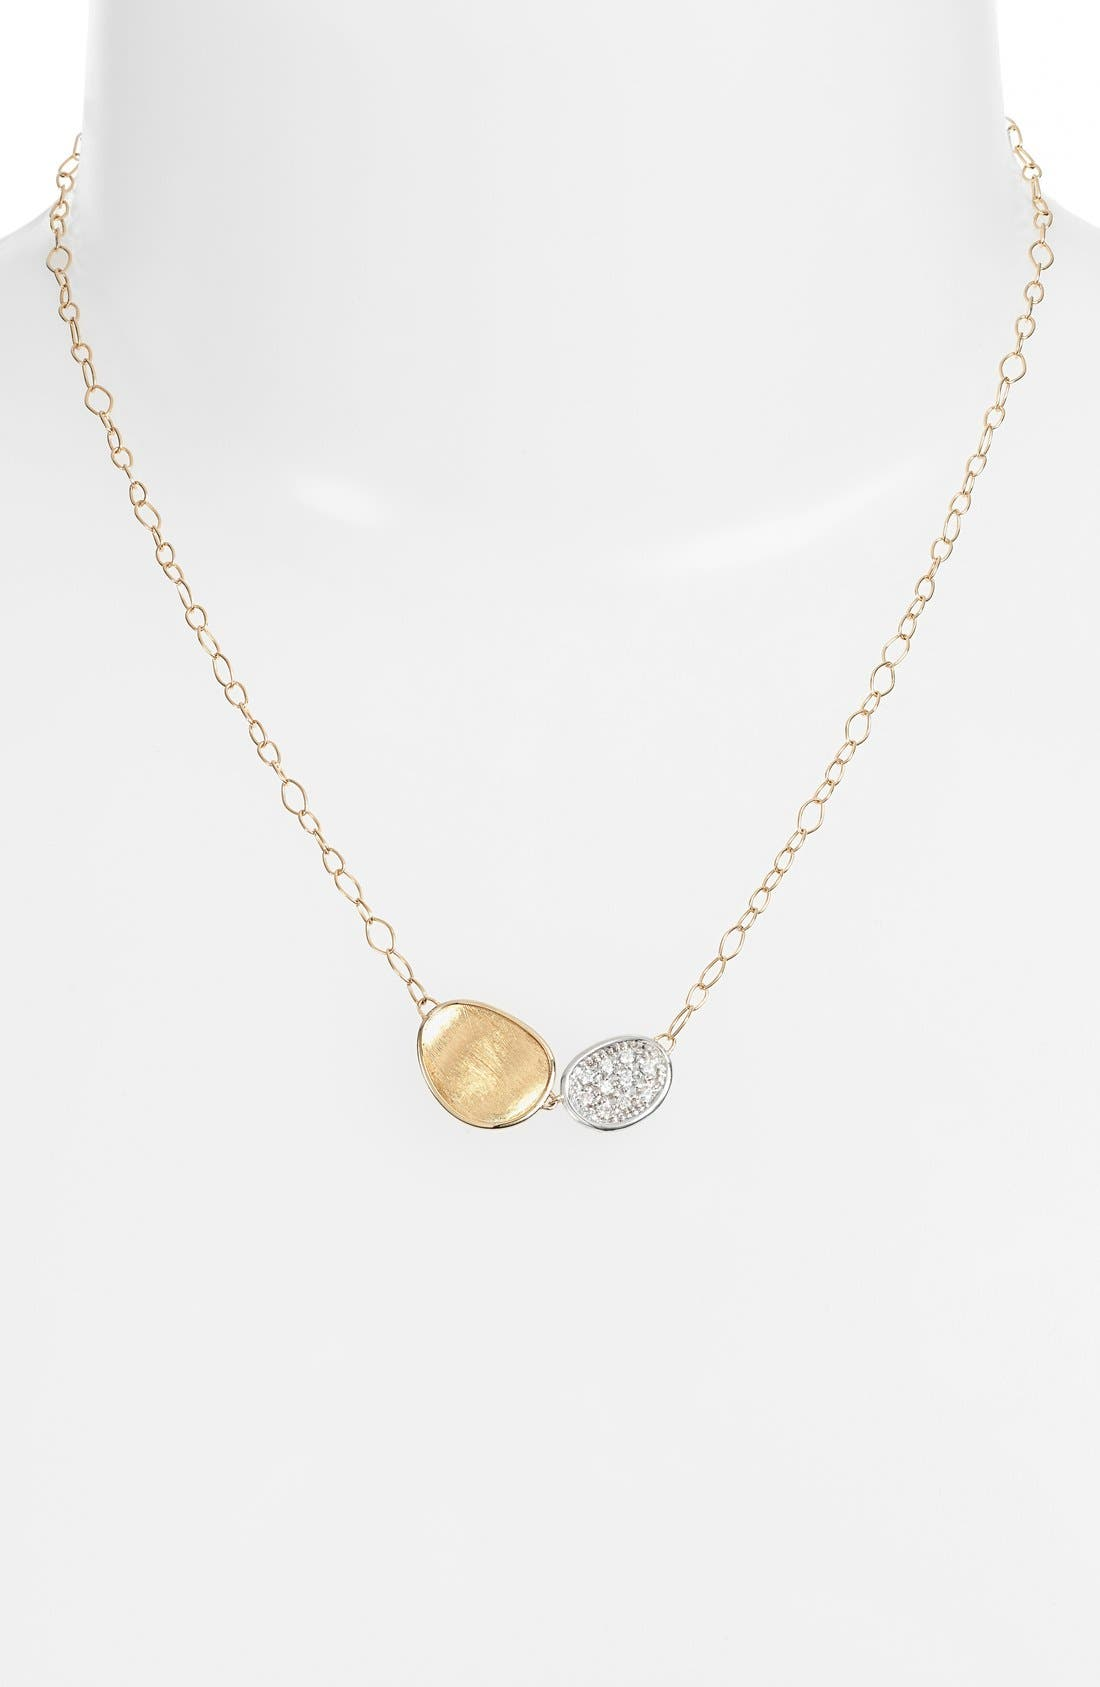 Lunaria Pendant Necklace,                             Alternate thumbnail 2, color,                             YELLOW GOLD